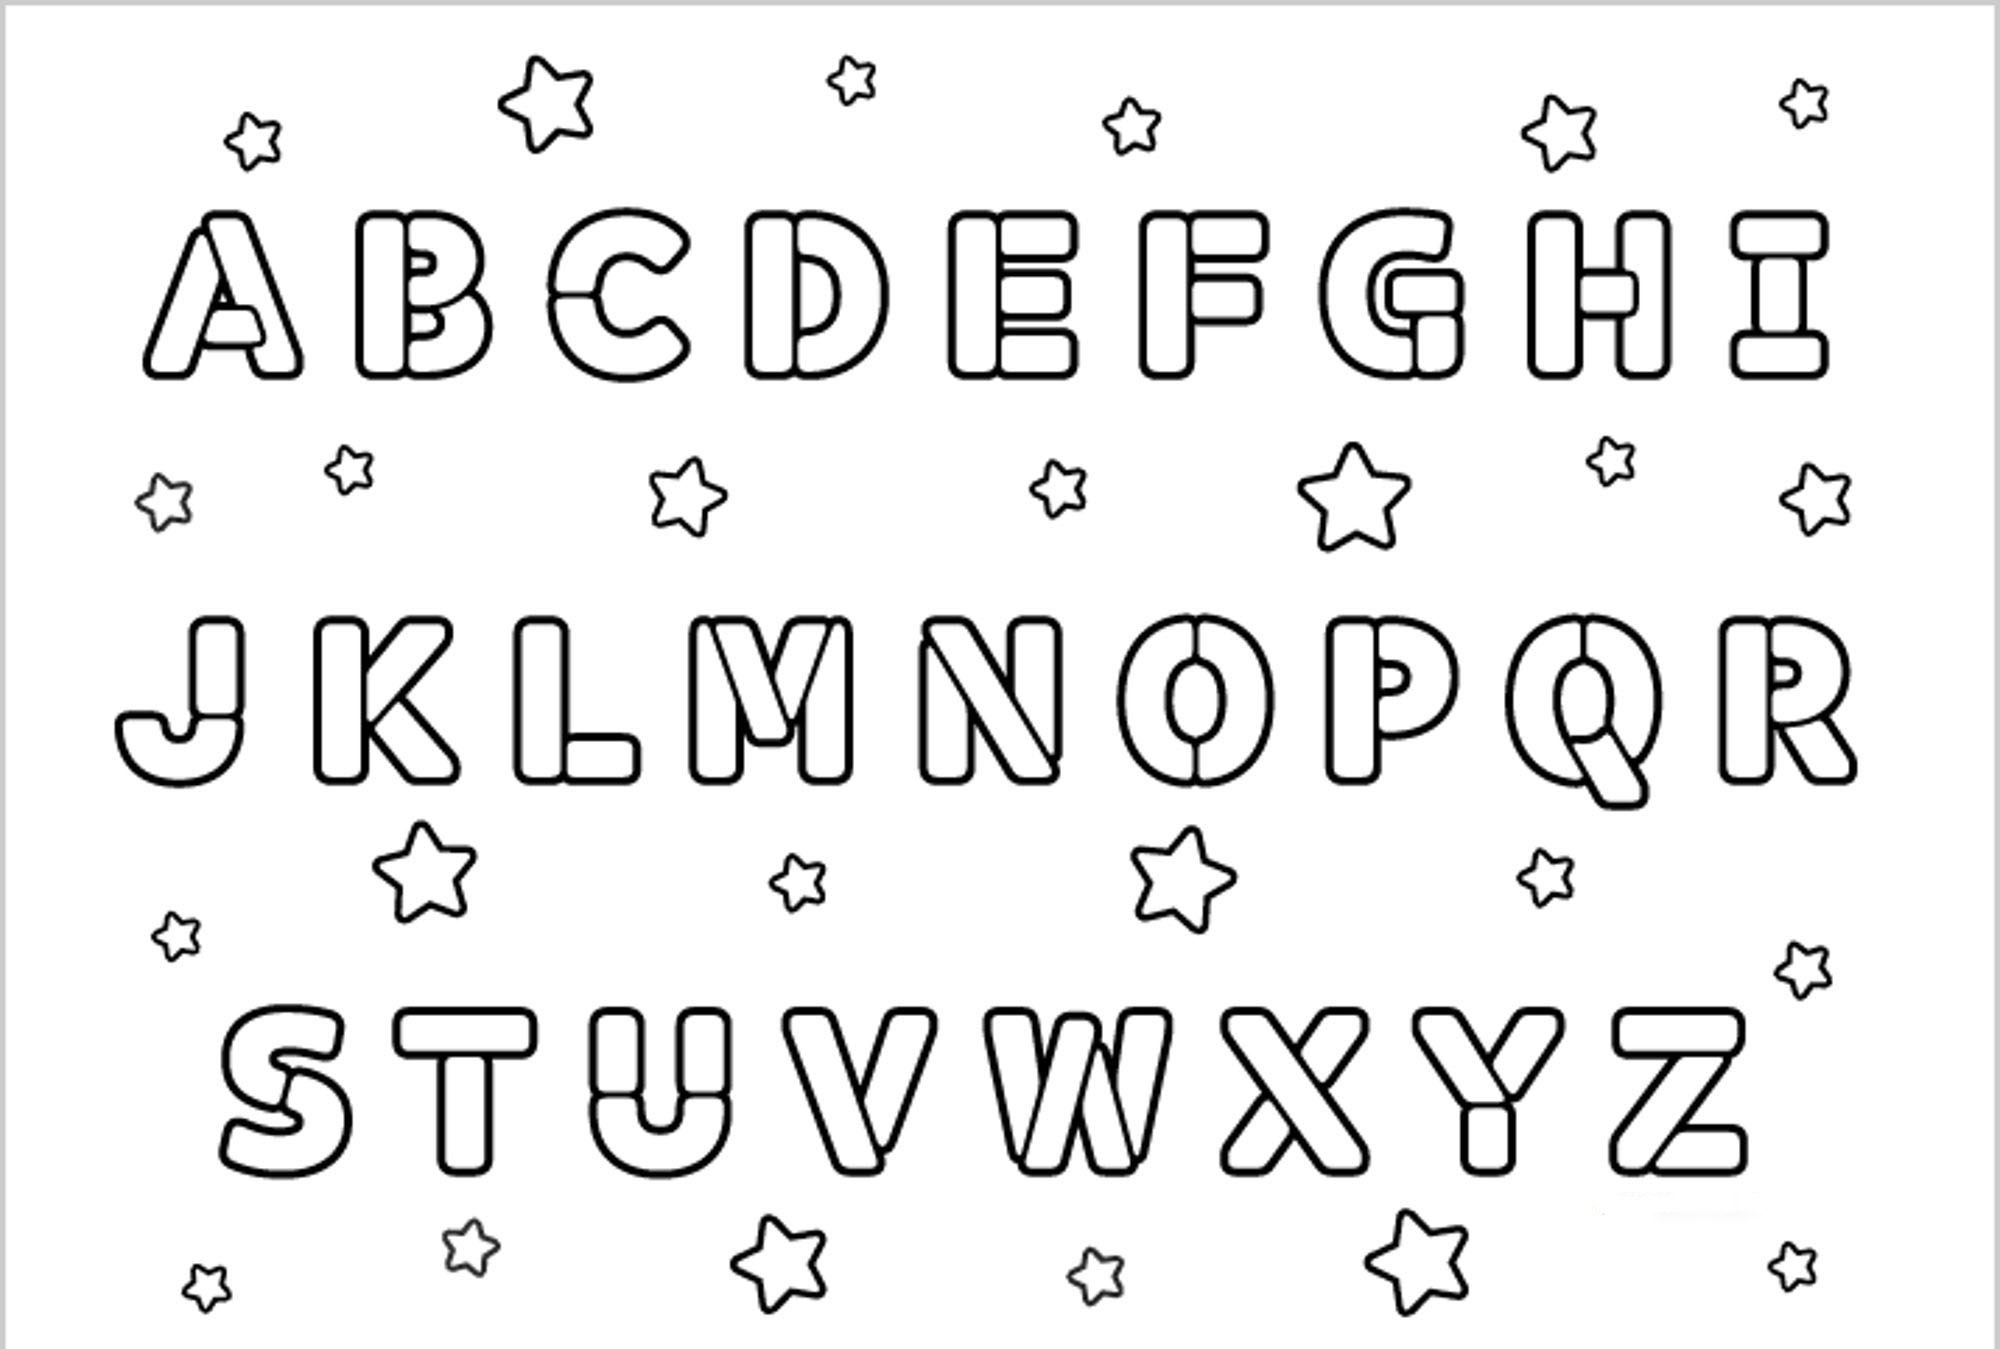 printable coloring pages alphabet - Coloring Pages Of Alphabet